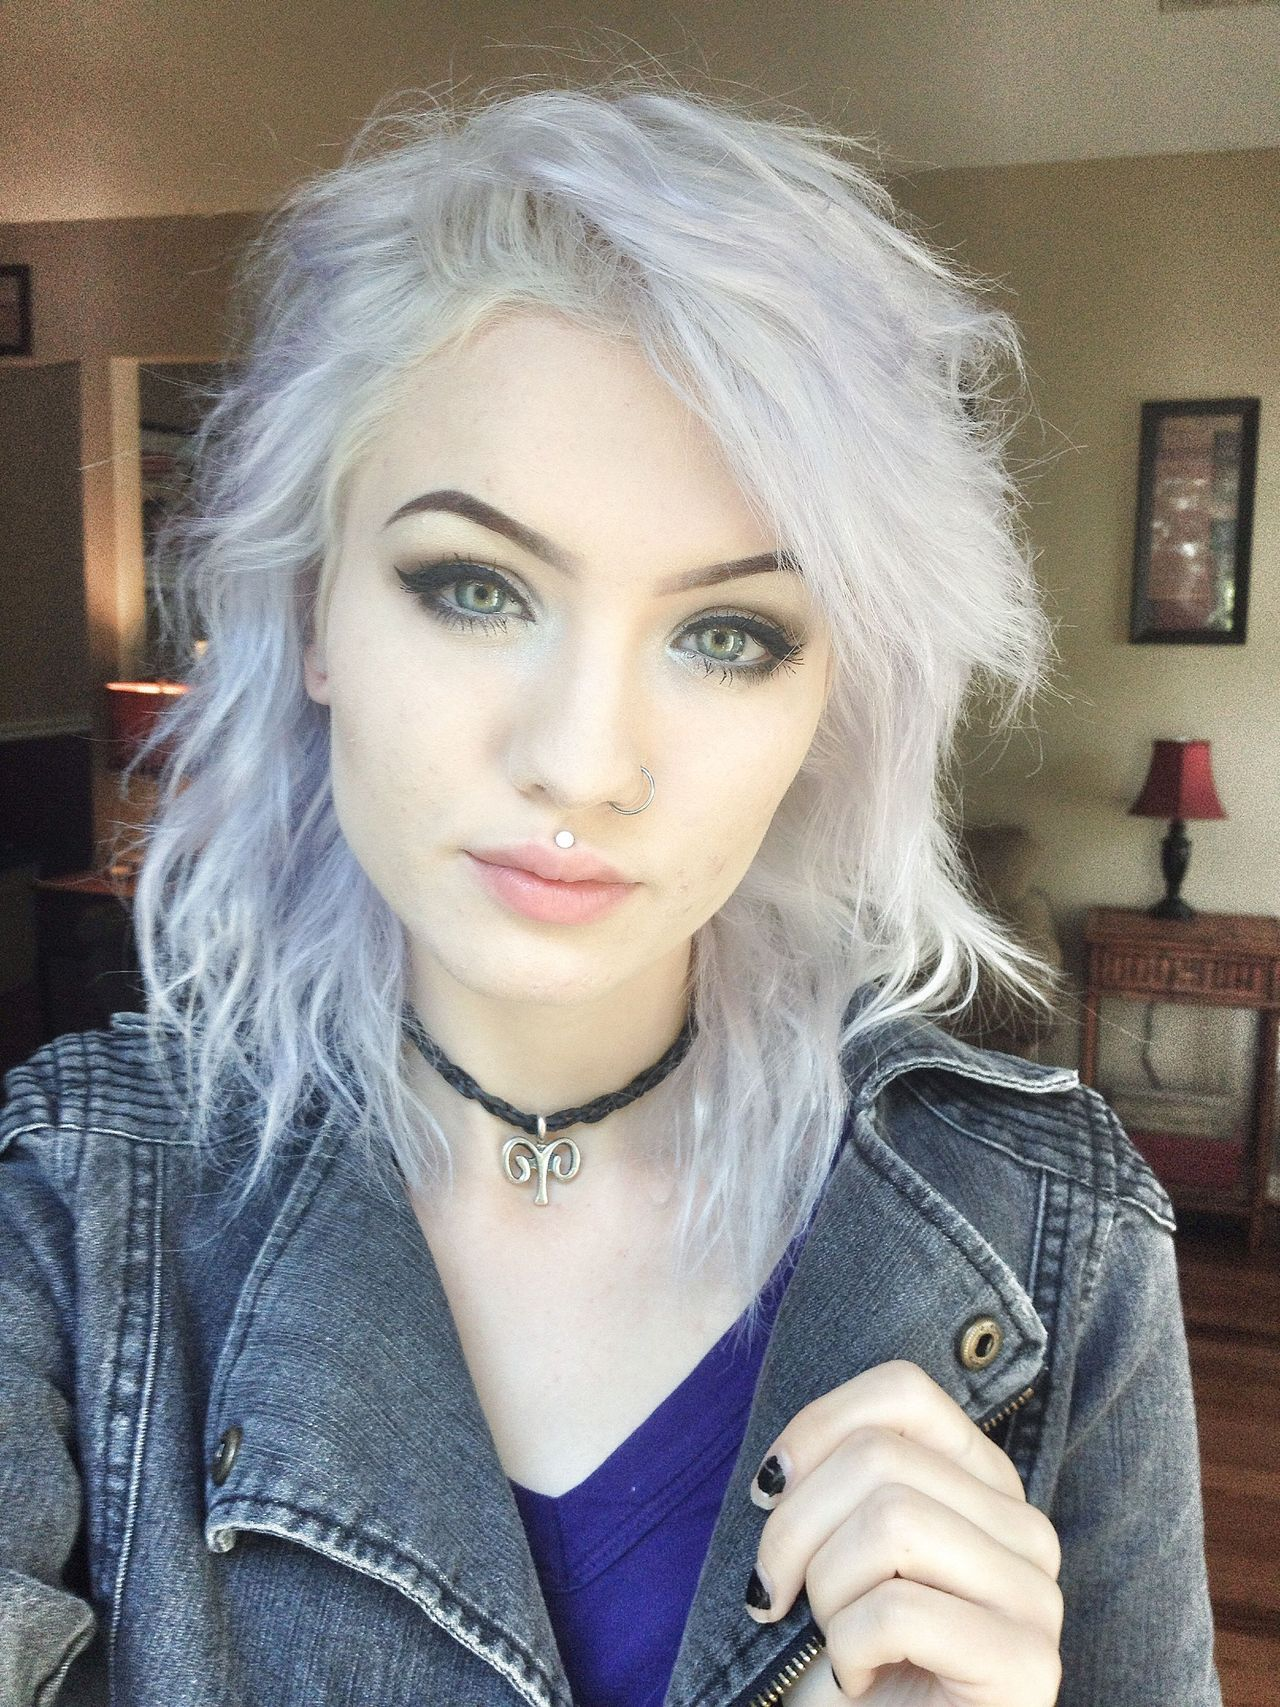 Tousled Platinum White Shoulder Length Hair Hair And Updos - Platinum hairstyles